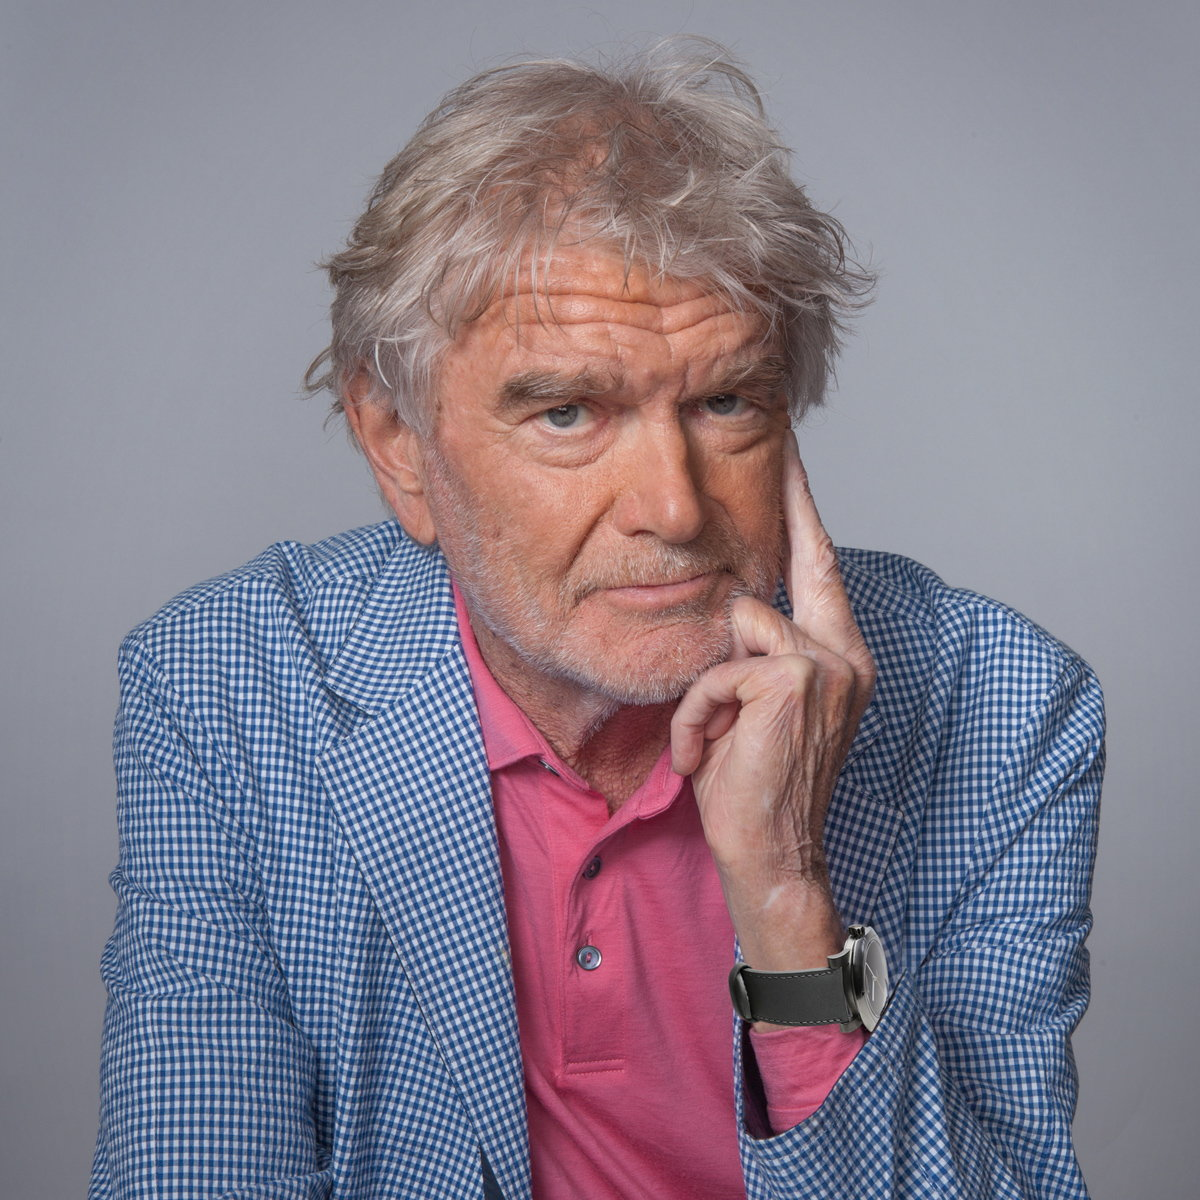 World Design Organization to Present 2017 World Design Medal to Hartmut Esslinger